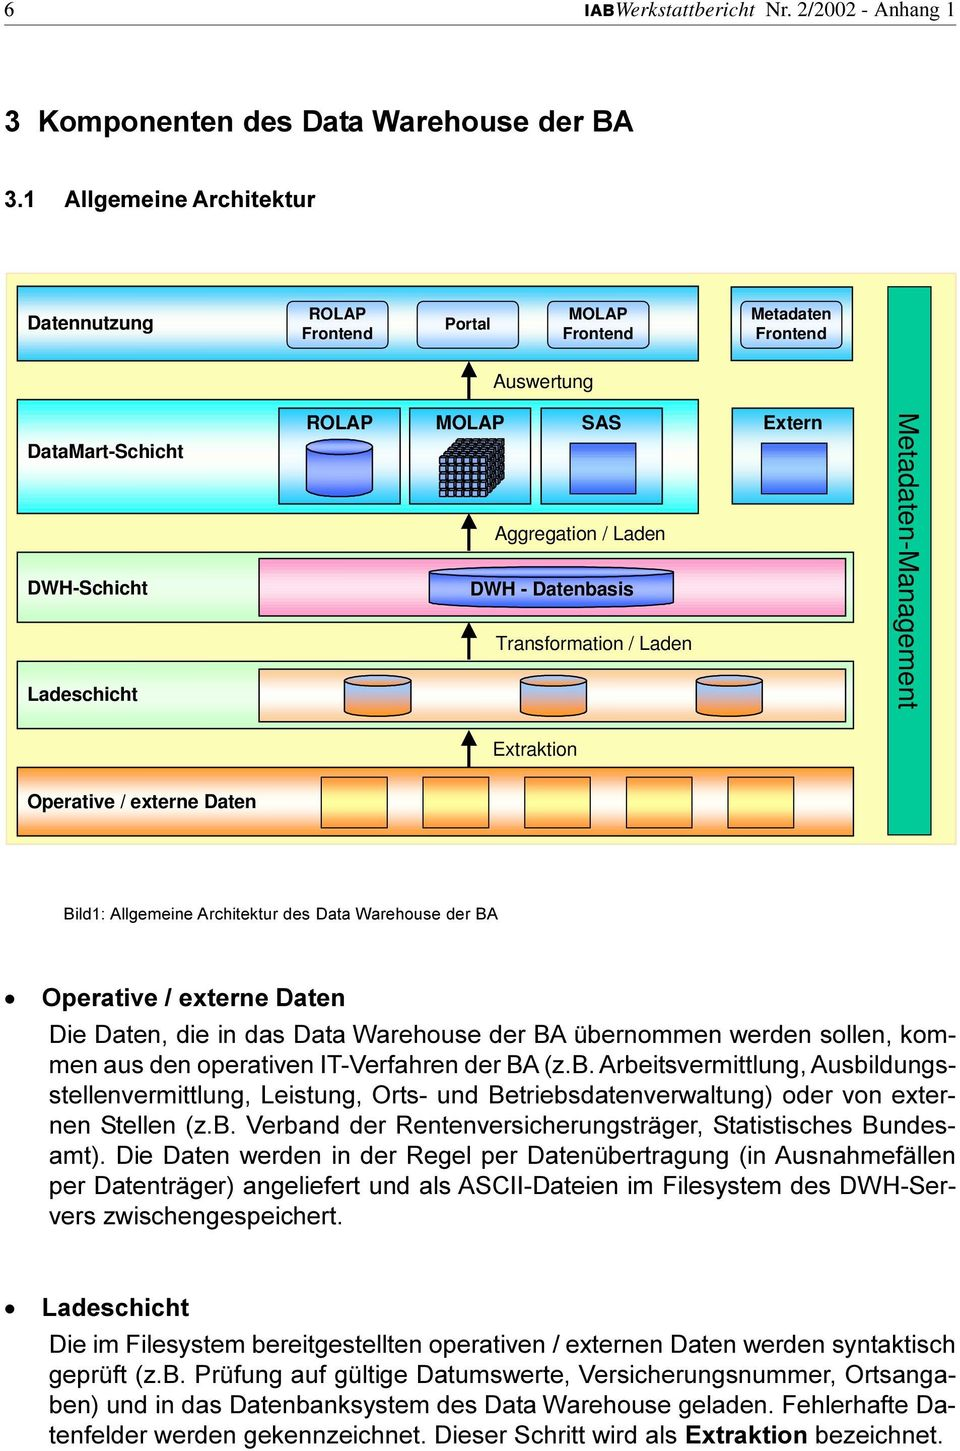 Ladeschicht ROLAP MOLAP SAS Extern Aggregation / Laden DWH - Datenbasis Transformation / Laden Metadaten-Management Extraktion Operative / externe Daten Bild1: Allgemeine Architektur des Data